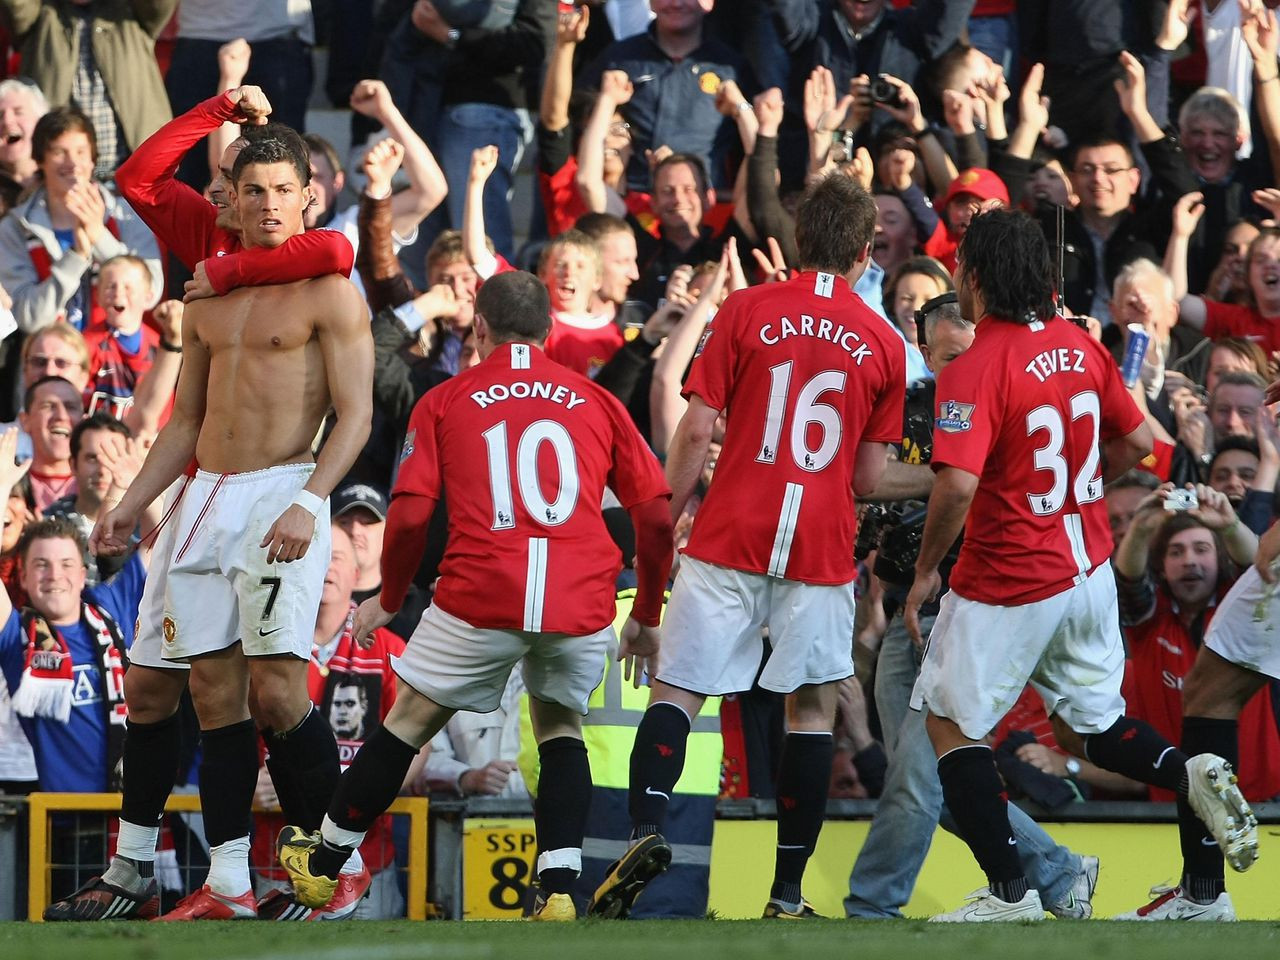 glory days the story of the 2008 09 premier league title manchester united https www manutd com en news detail the story of the 2008 09 premier league title